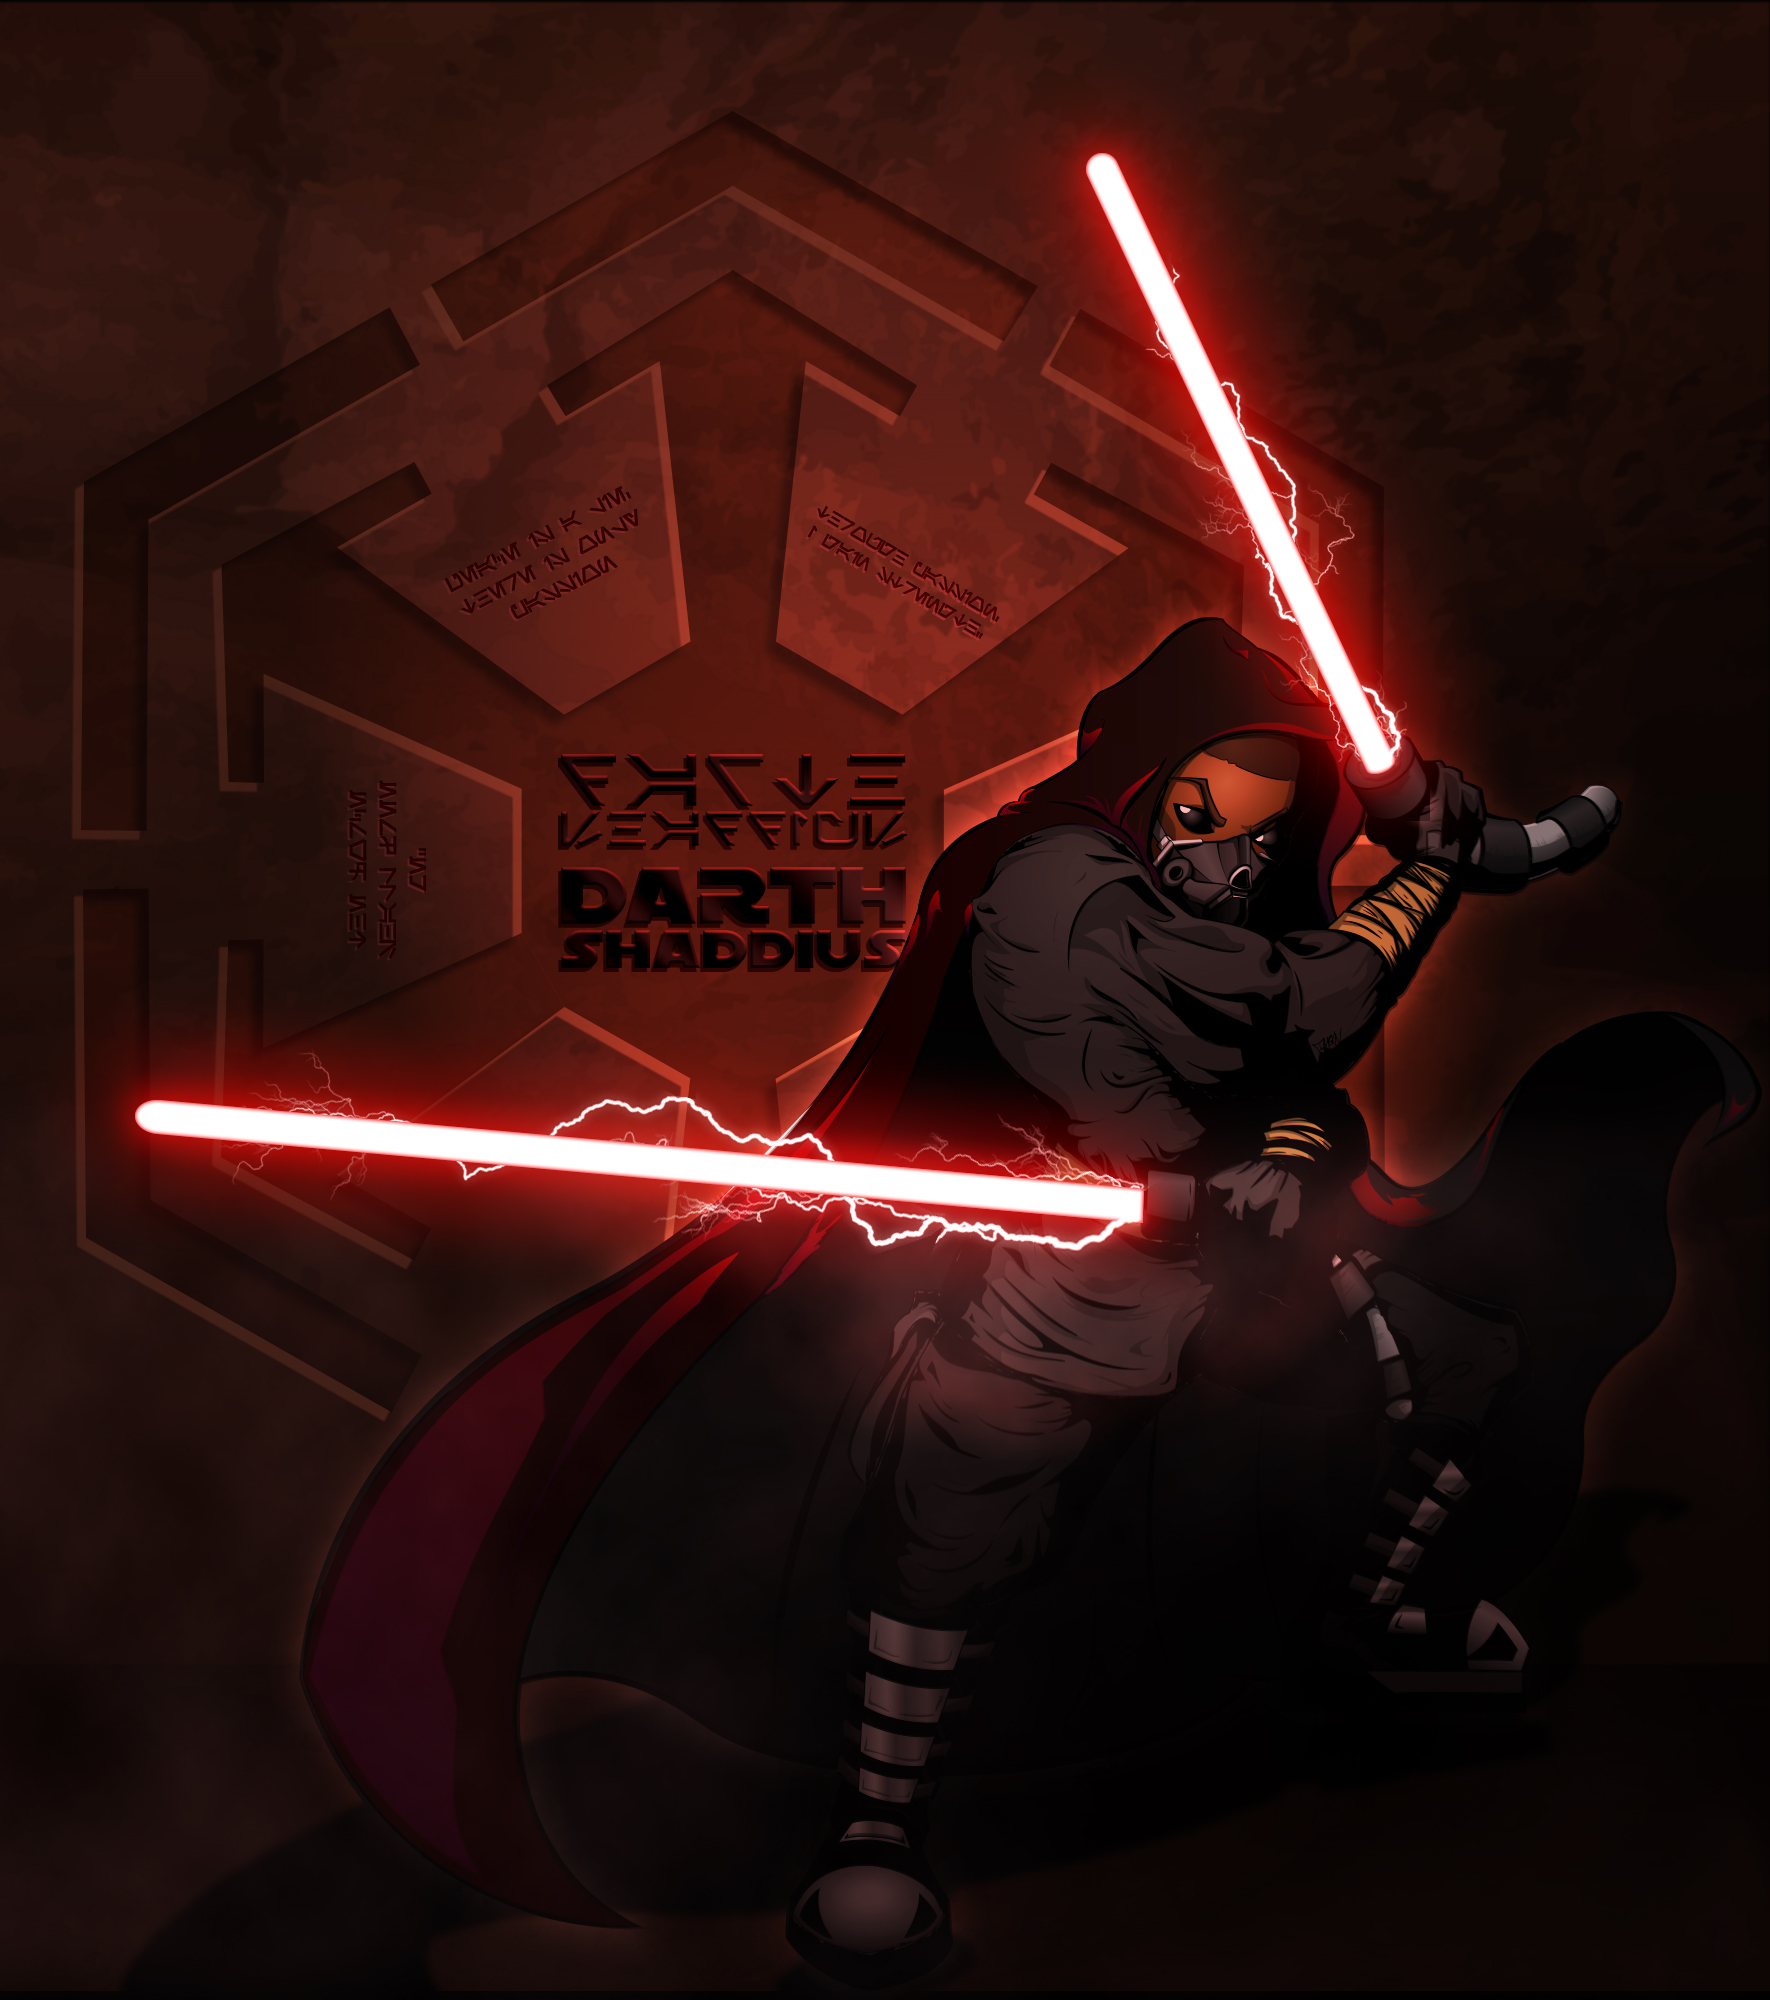 Darth Shaddius